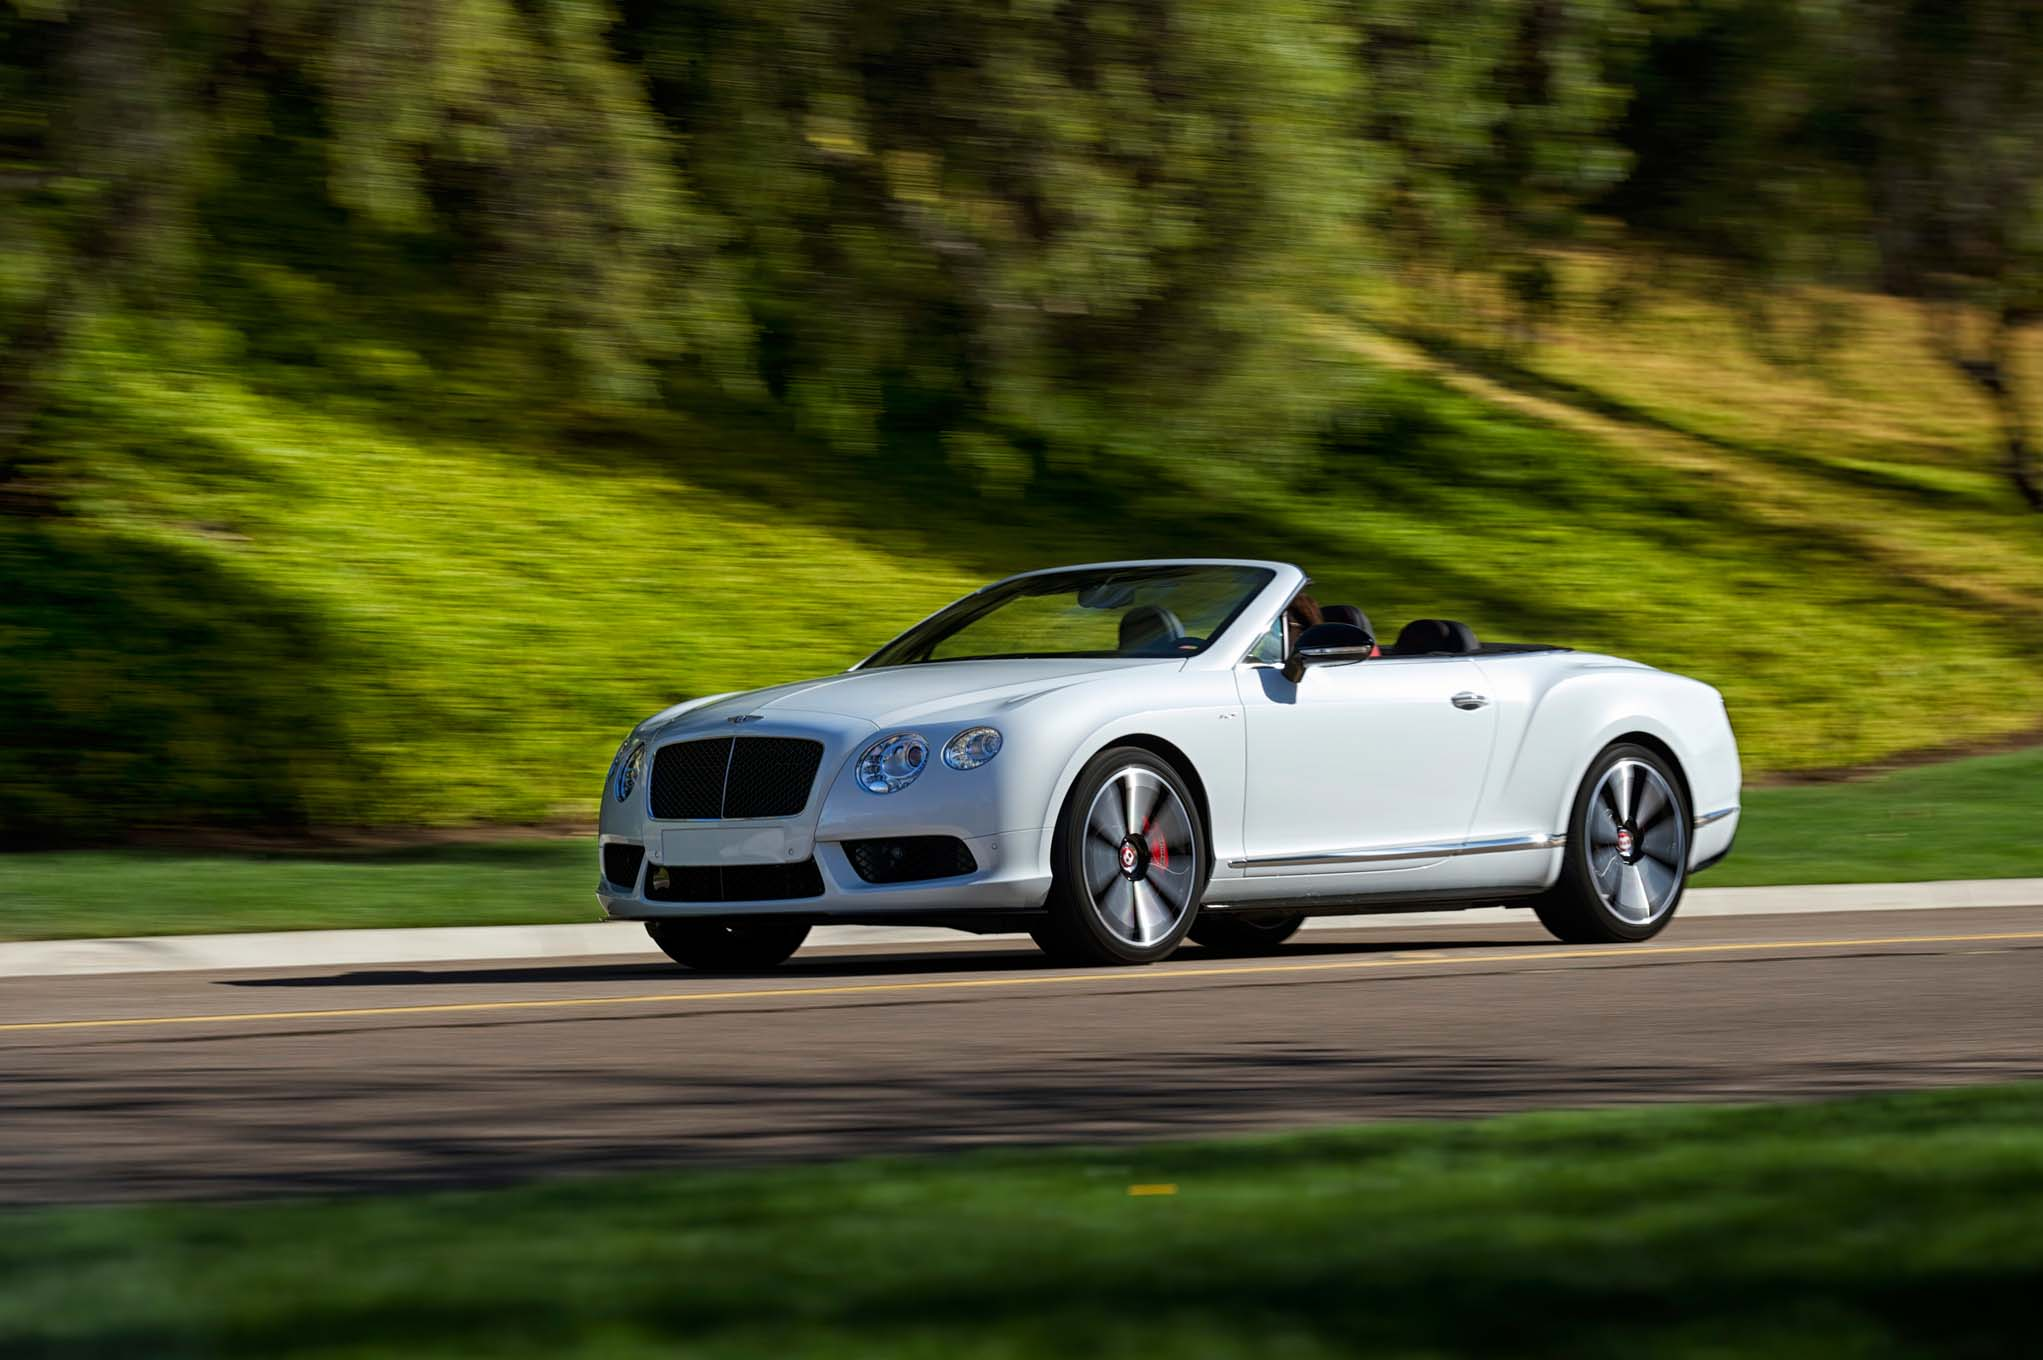 2014 bentley continental gt v8 s review automobile magazine. Black Bedroom Furniture Sets. Home Design Ideas